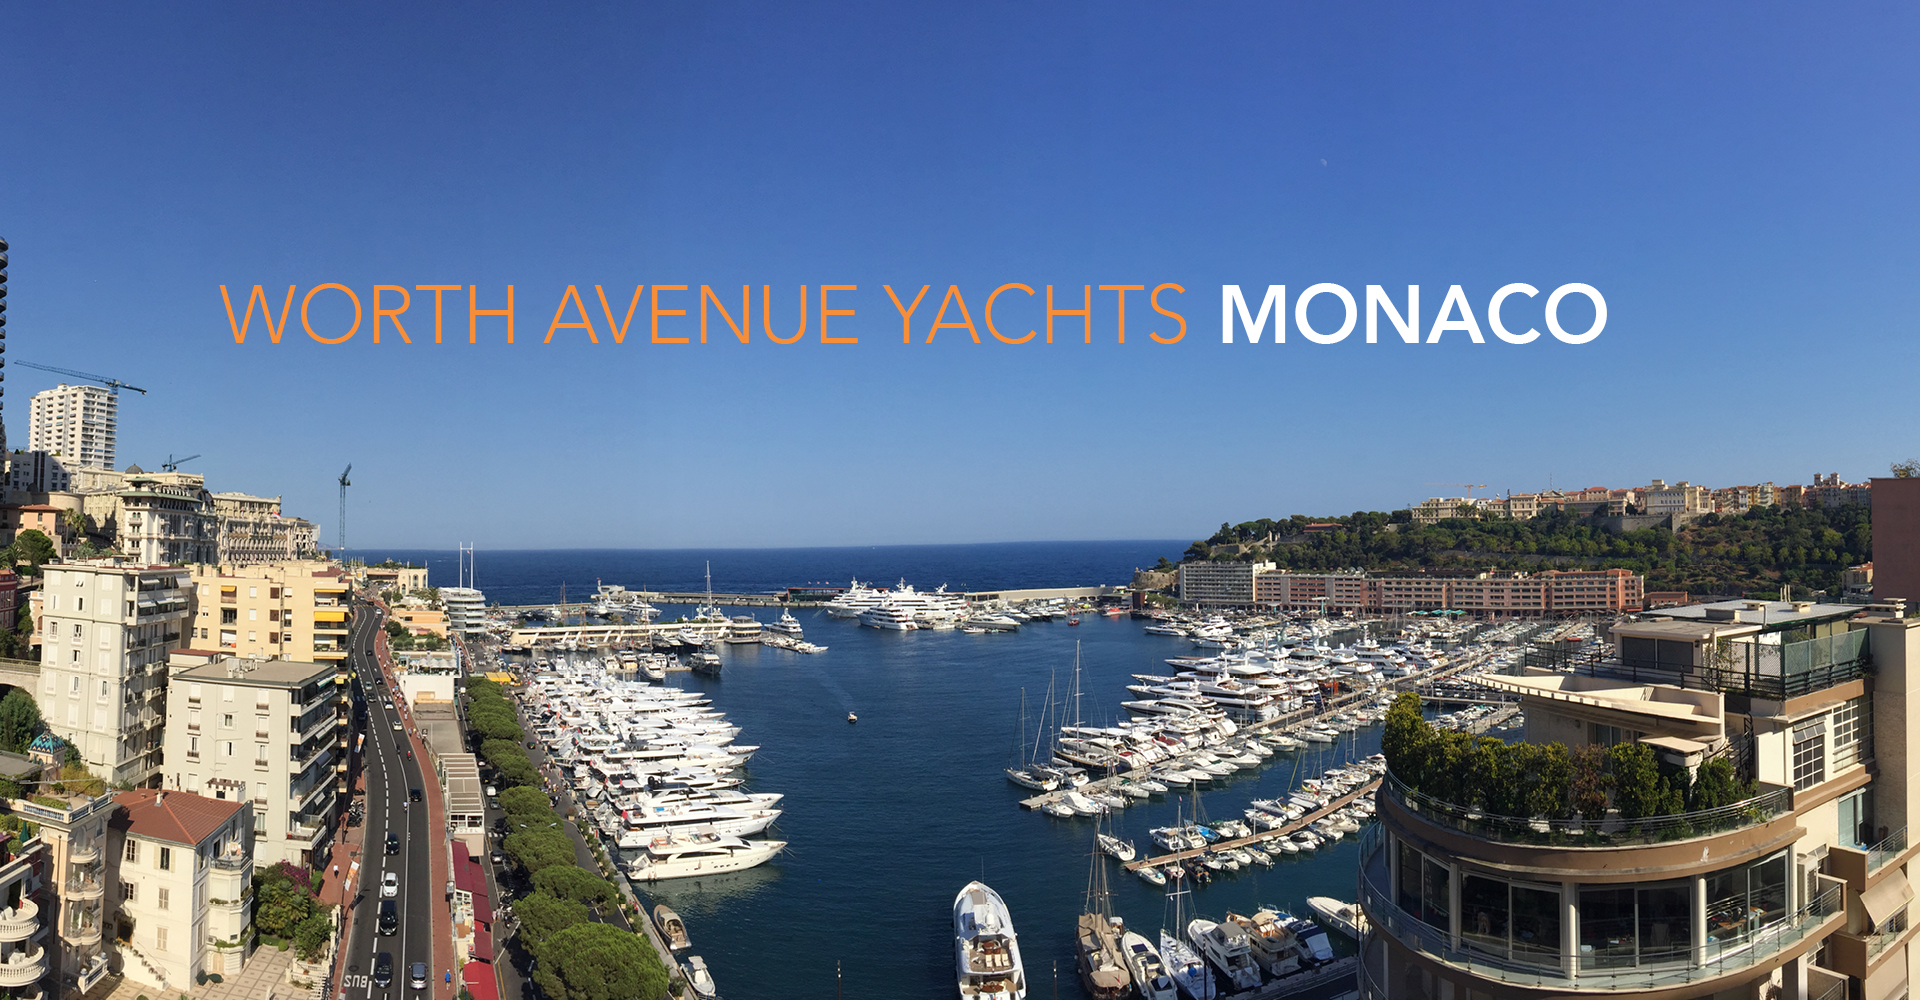 Monaco Yachts for charter and yachts for sale